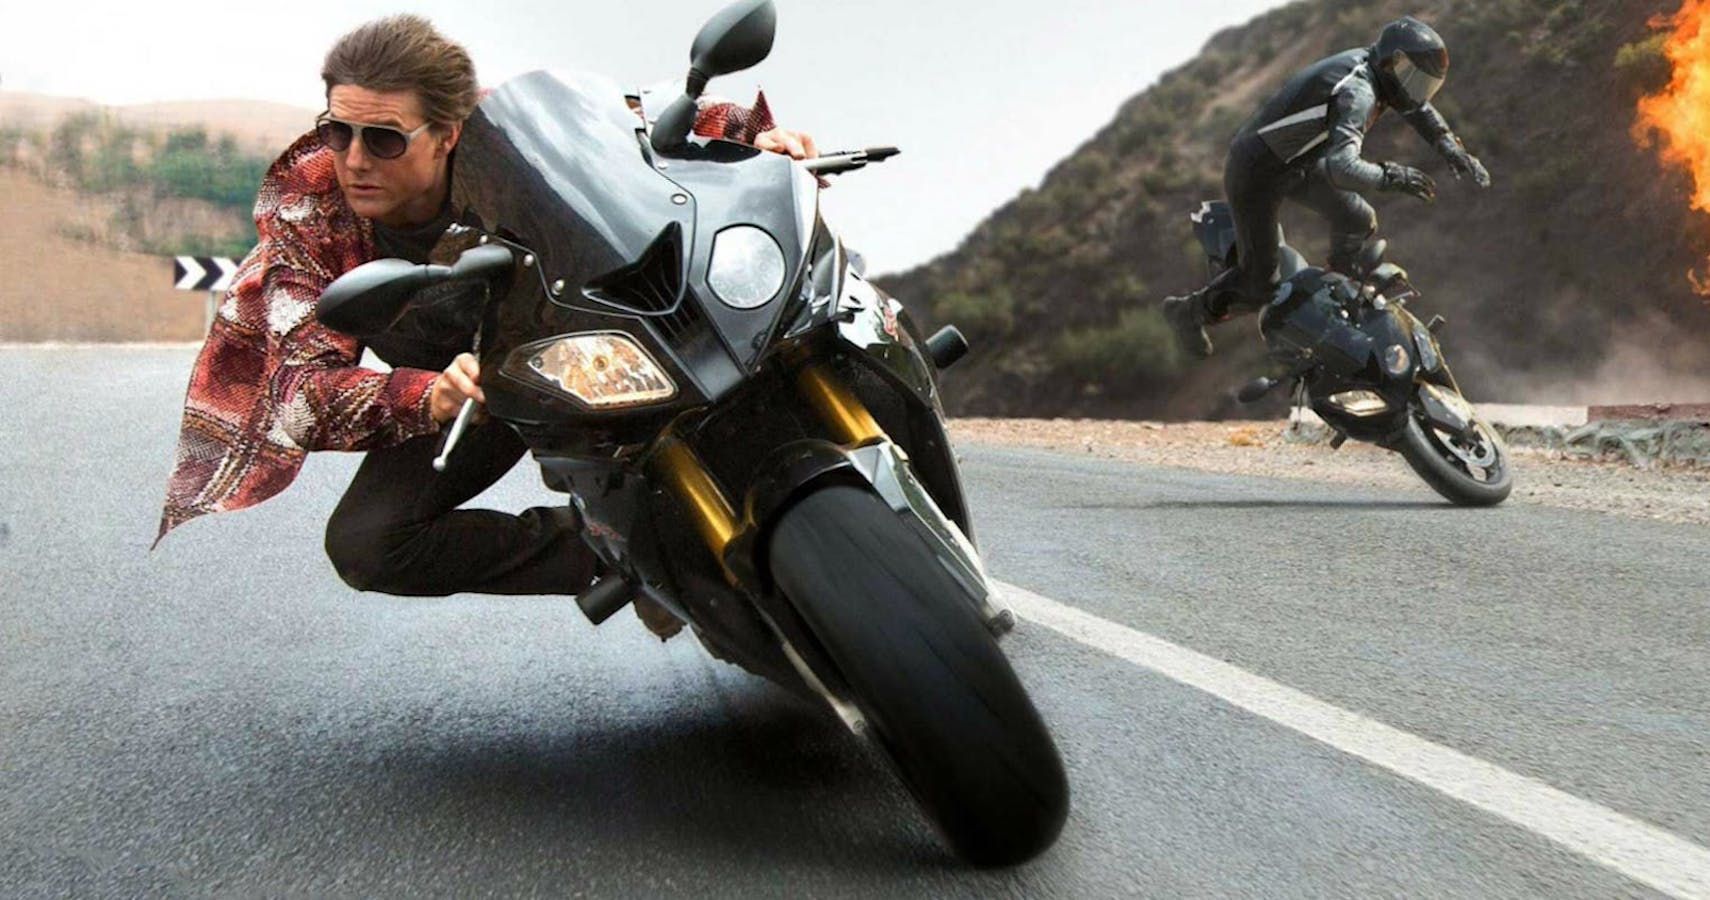 Watch This Hollywood Stuntman Discuss The Greatest Movie Motorcycle Chases